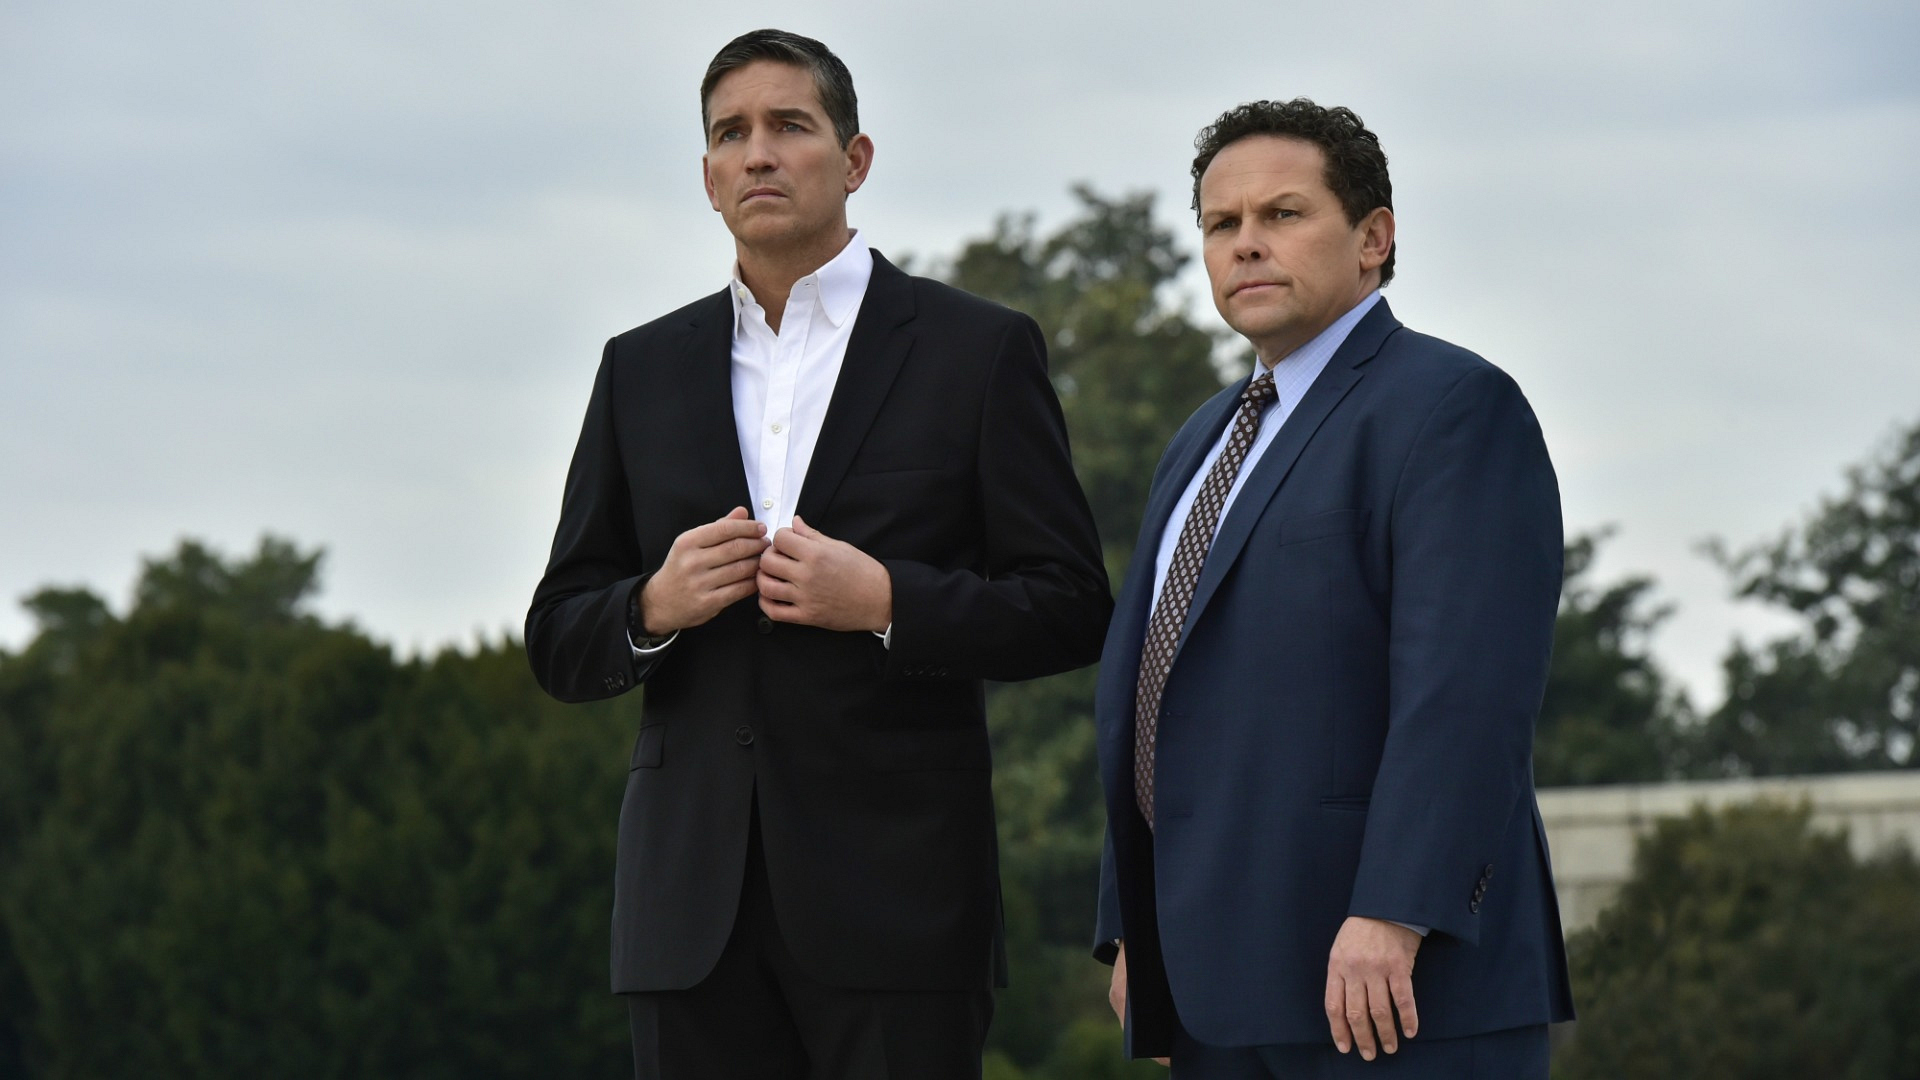 Reese and Fusco head to Capitol Hill.